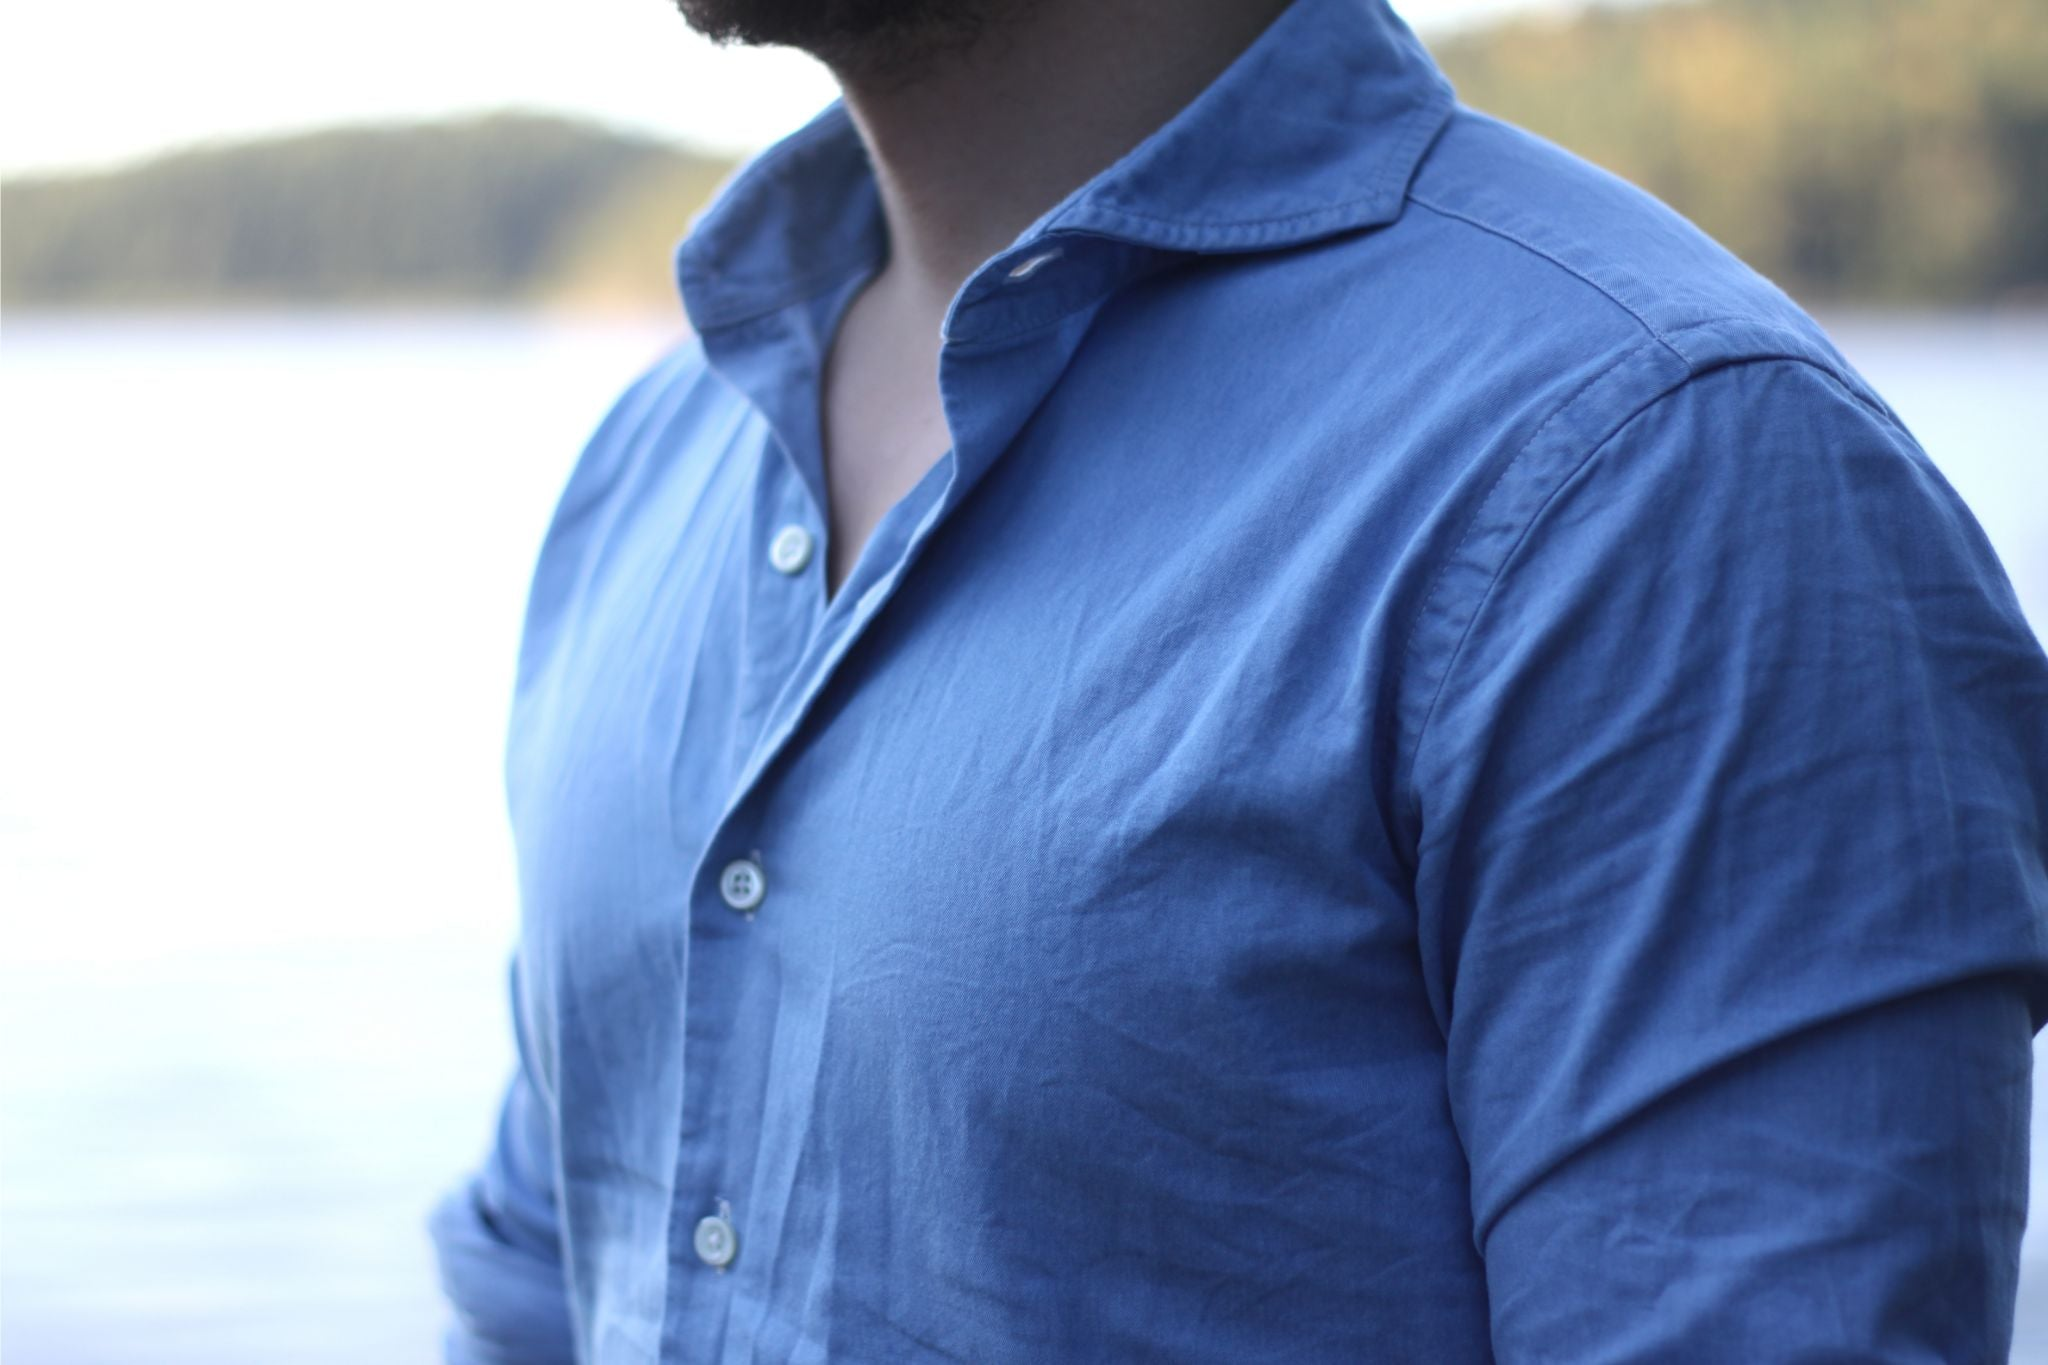 Proper Cloth denim shirt details - collar